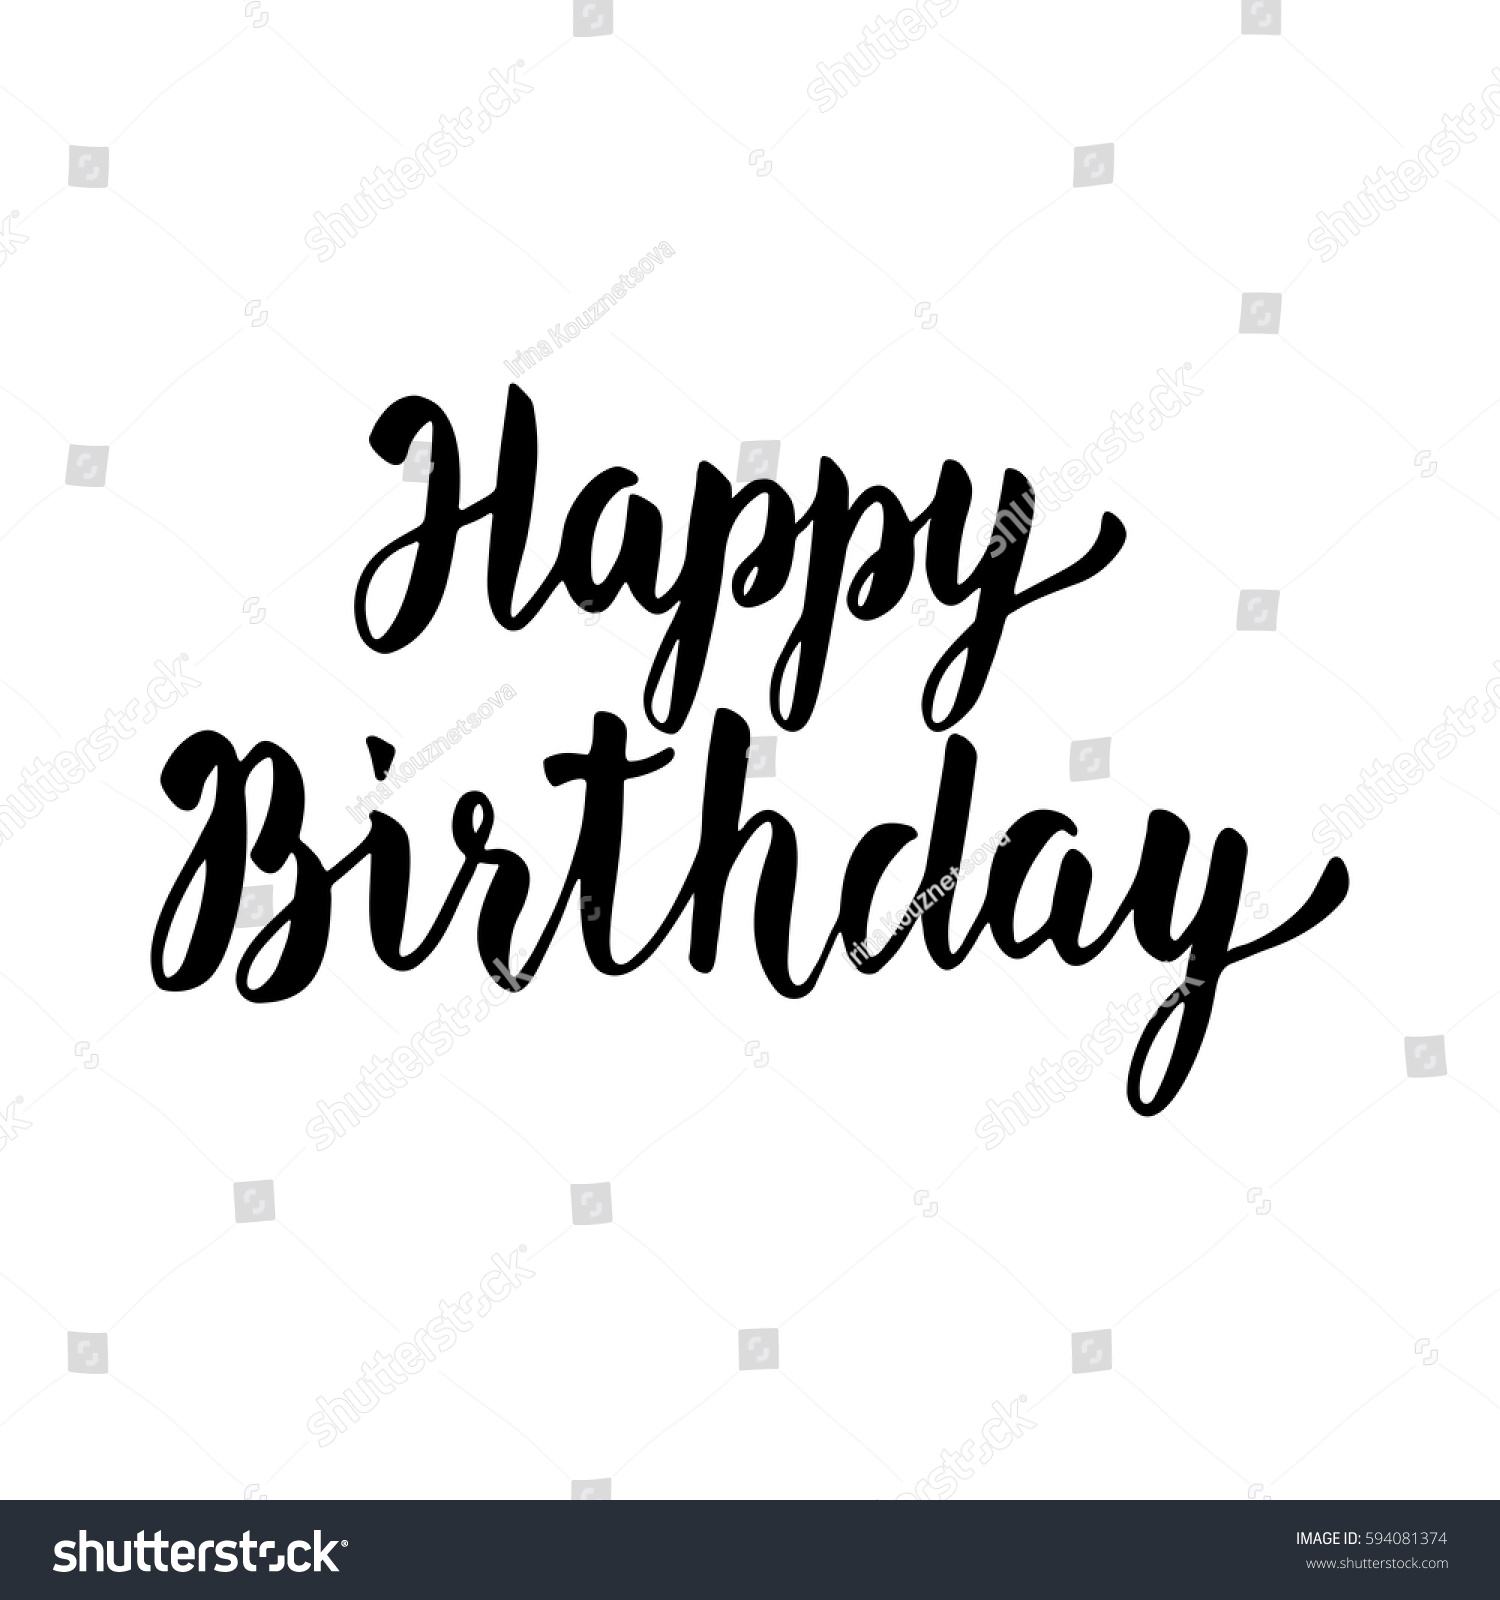 Happy birthday hand drawn lettering modern stock vector